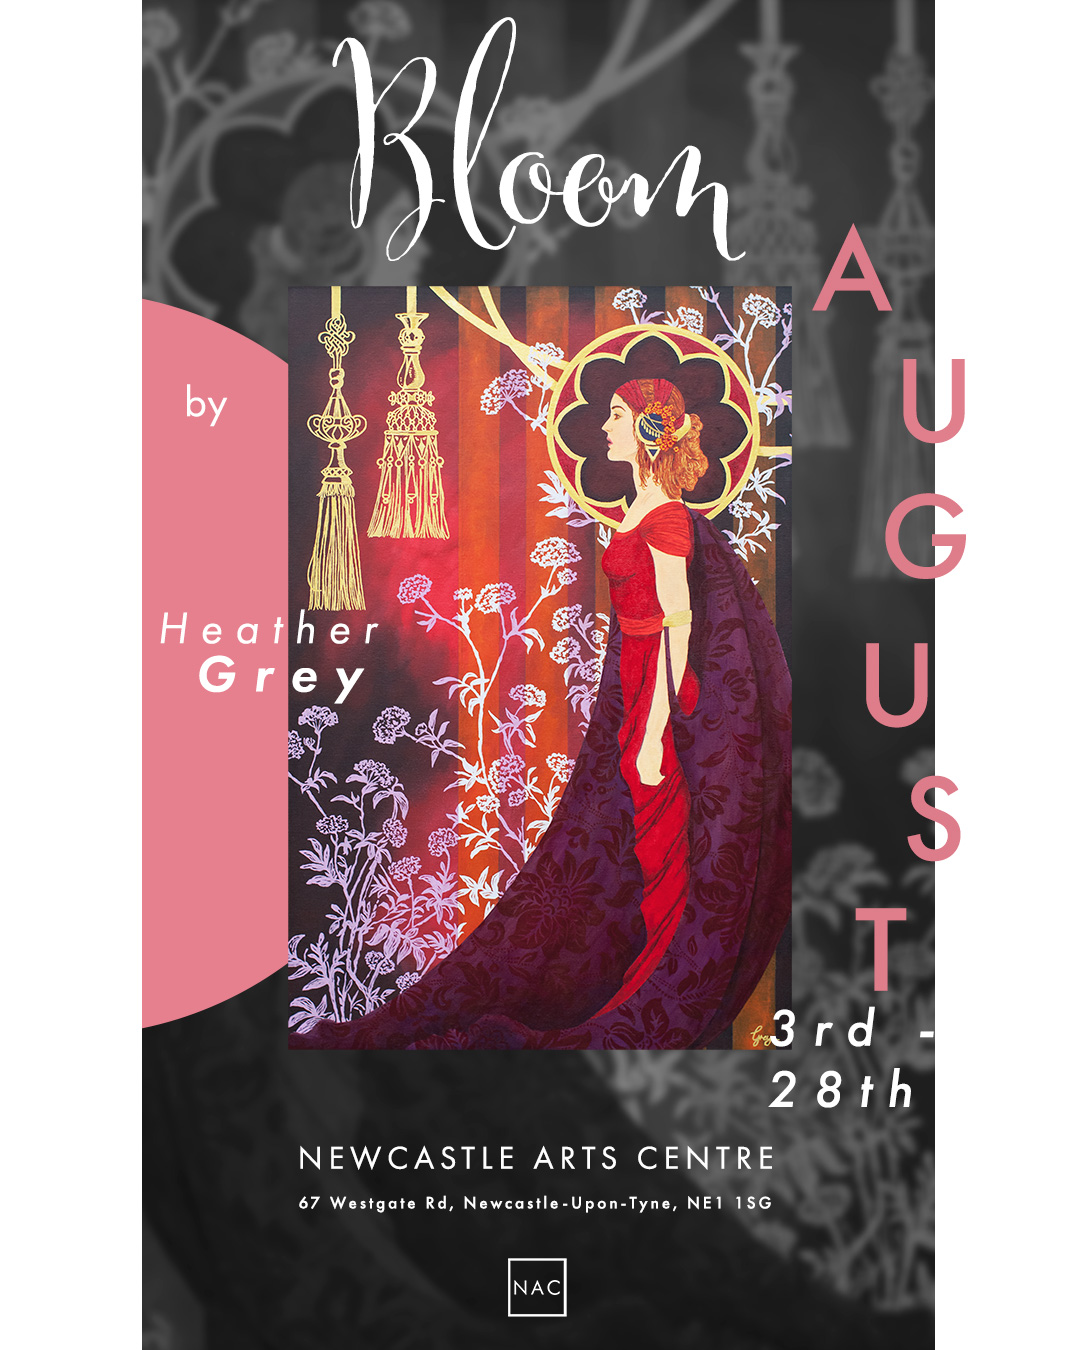 Heather Grey-exhibition-poster-Newcastle-Arts-Centre-Bloom-August